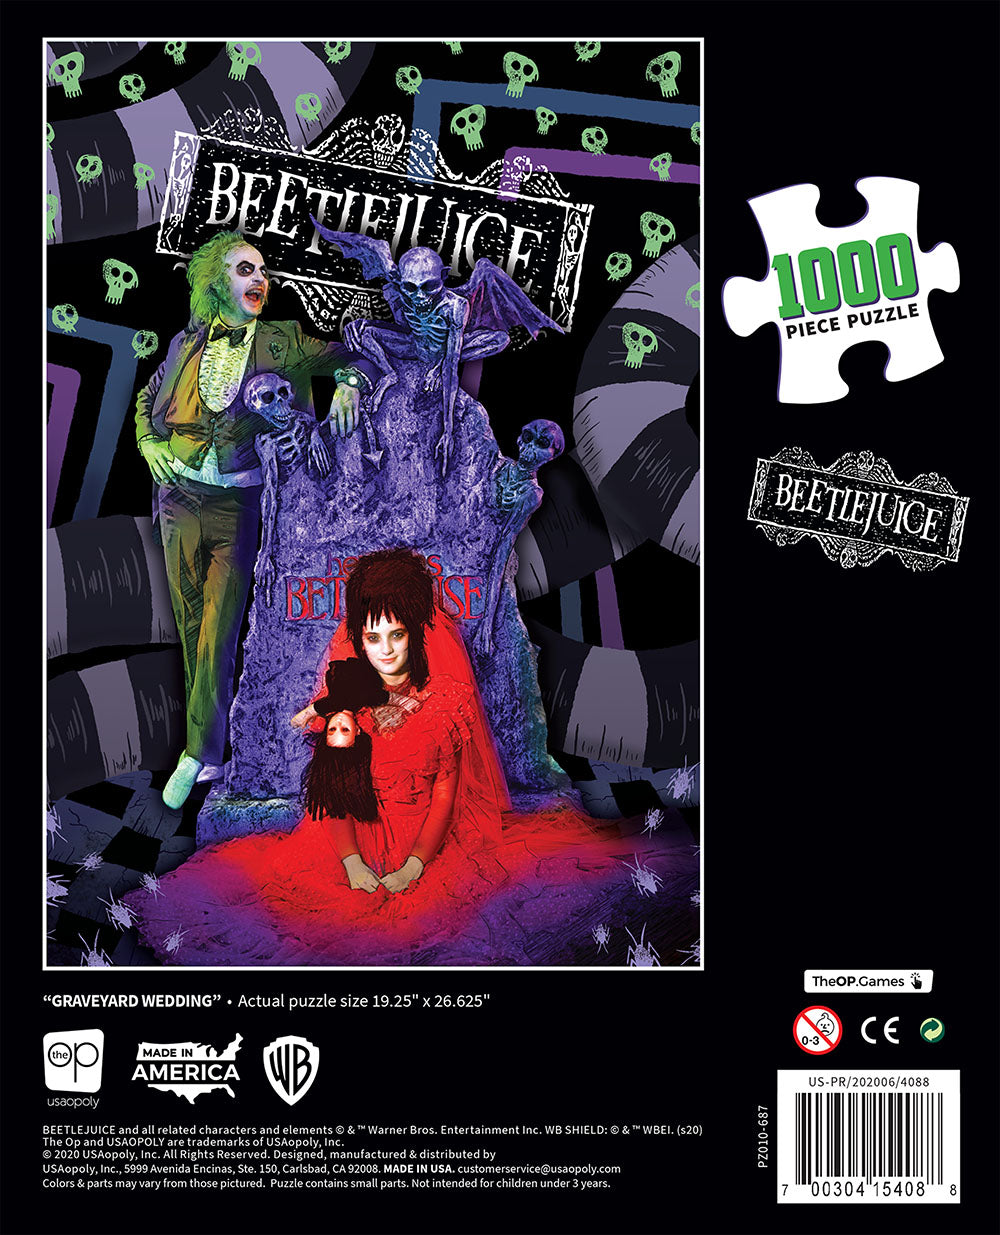 Beetlejuice: Graveyard Wedding 1000 Piece Puzzle | Davis Cards & Games